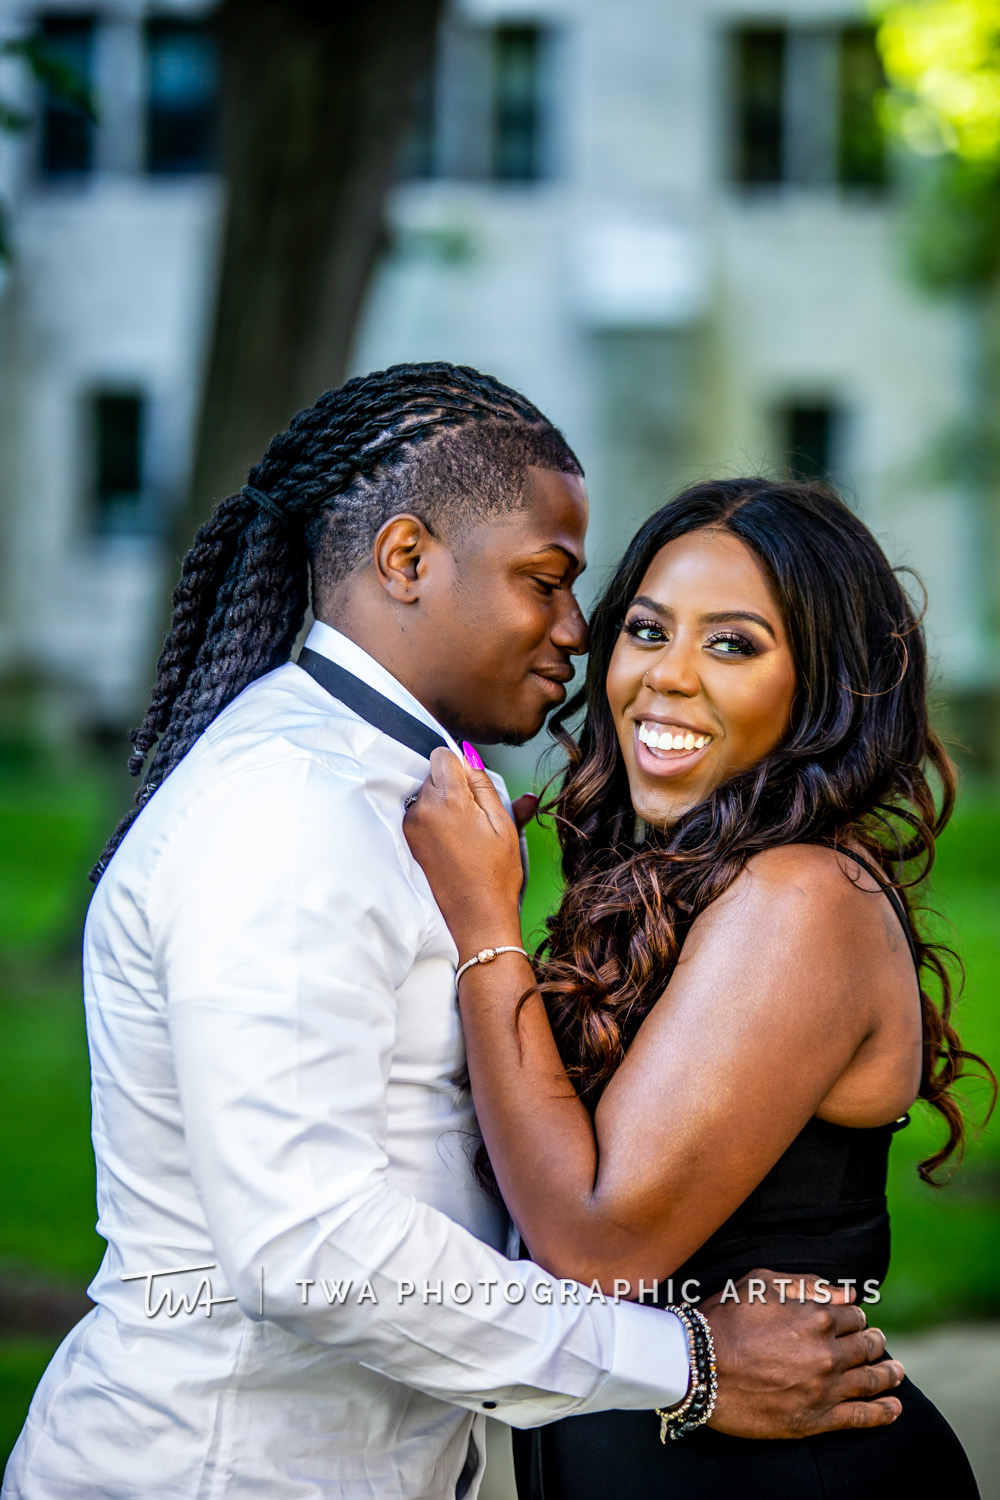 Chicago Wedding Photographers | Rodnesha & Dakota's Dominican University Chicago Engagement Session | TWA Photographic Artists